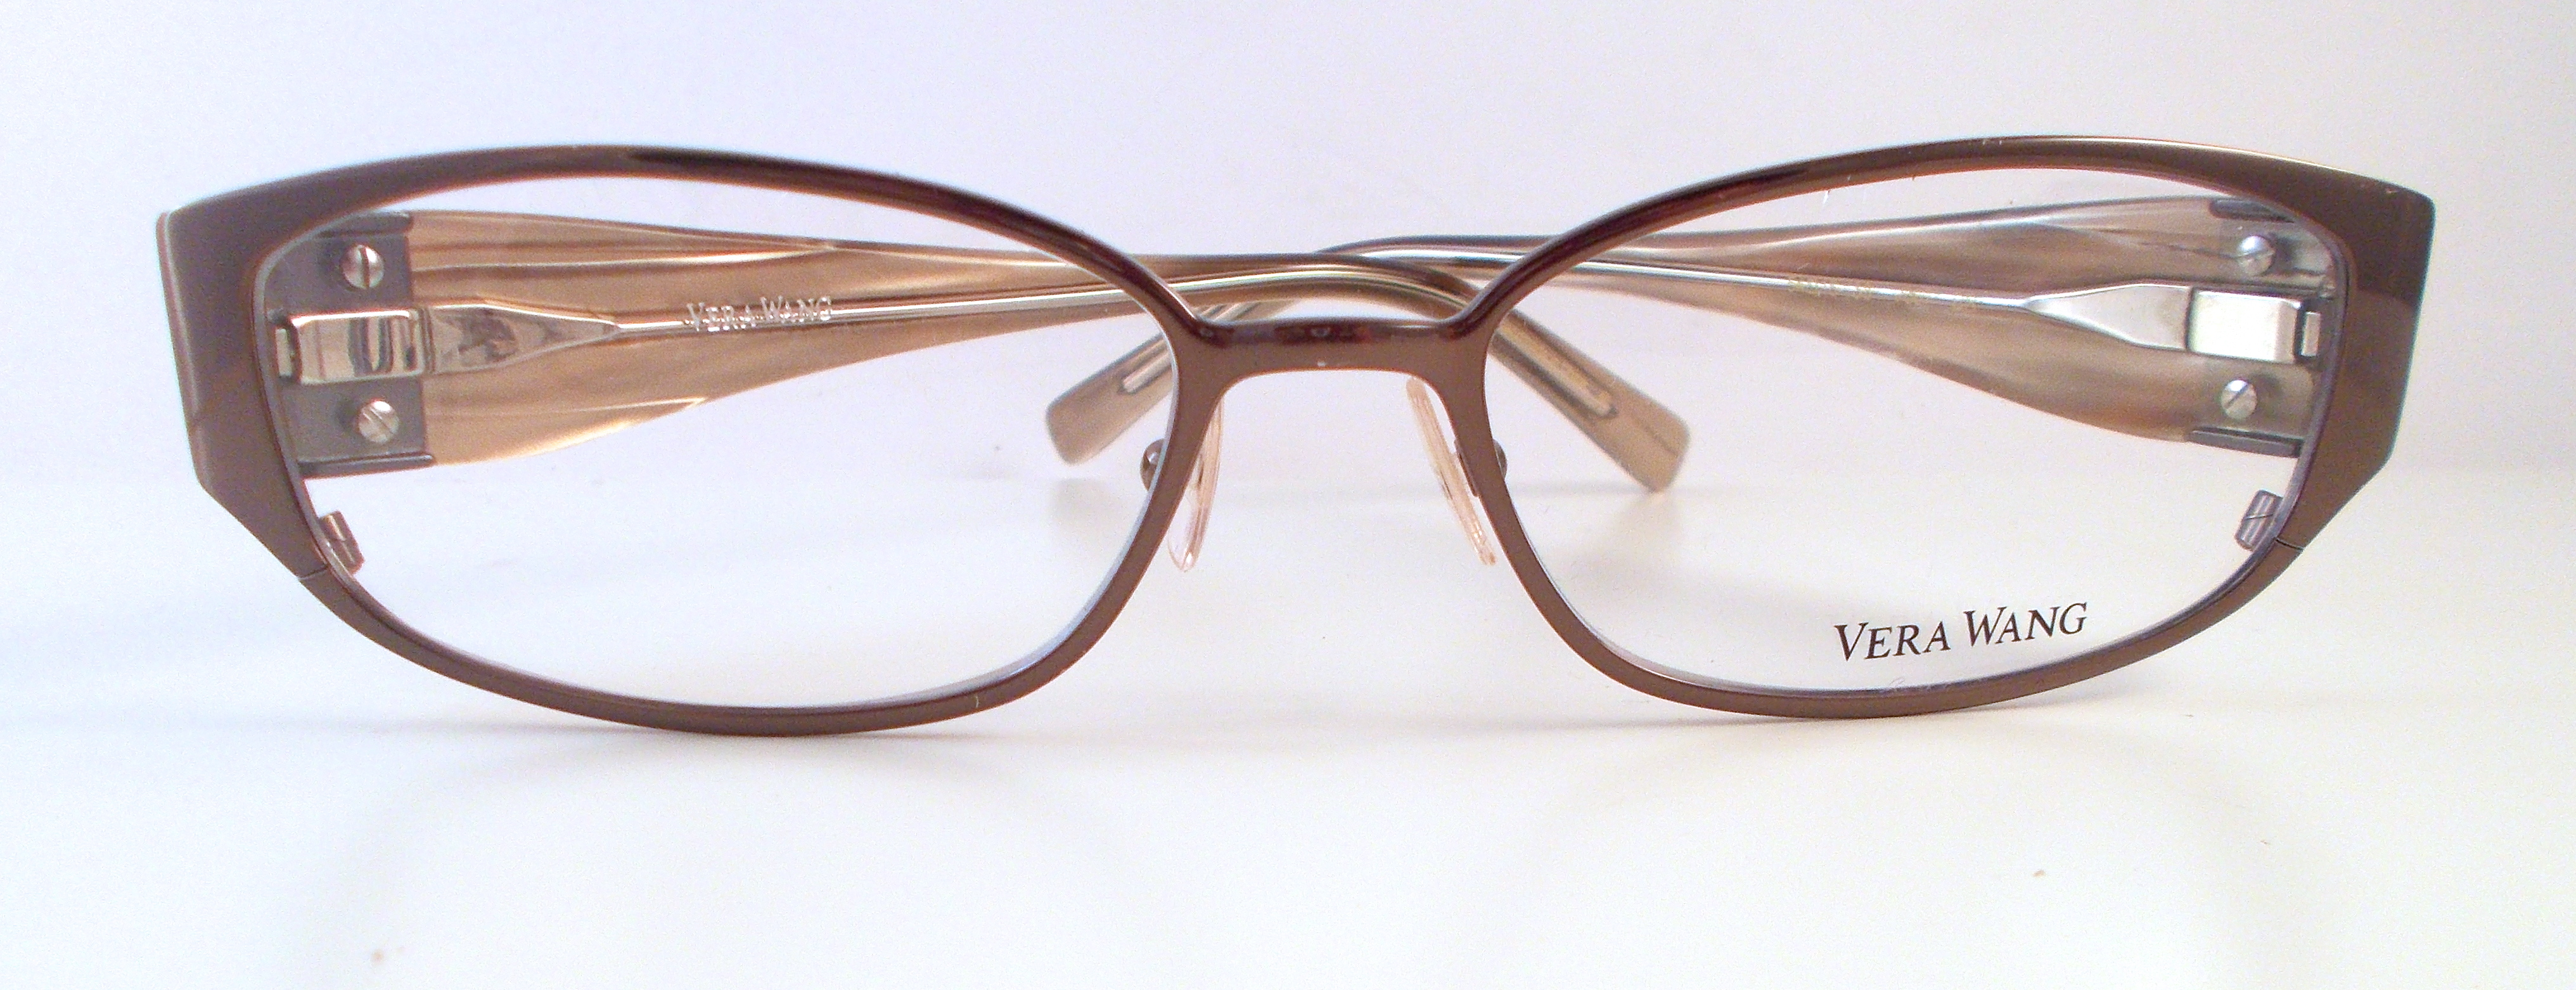 H&S Optical | Vera Wang V067 Eyewear Brown | Online Store Powered by ...